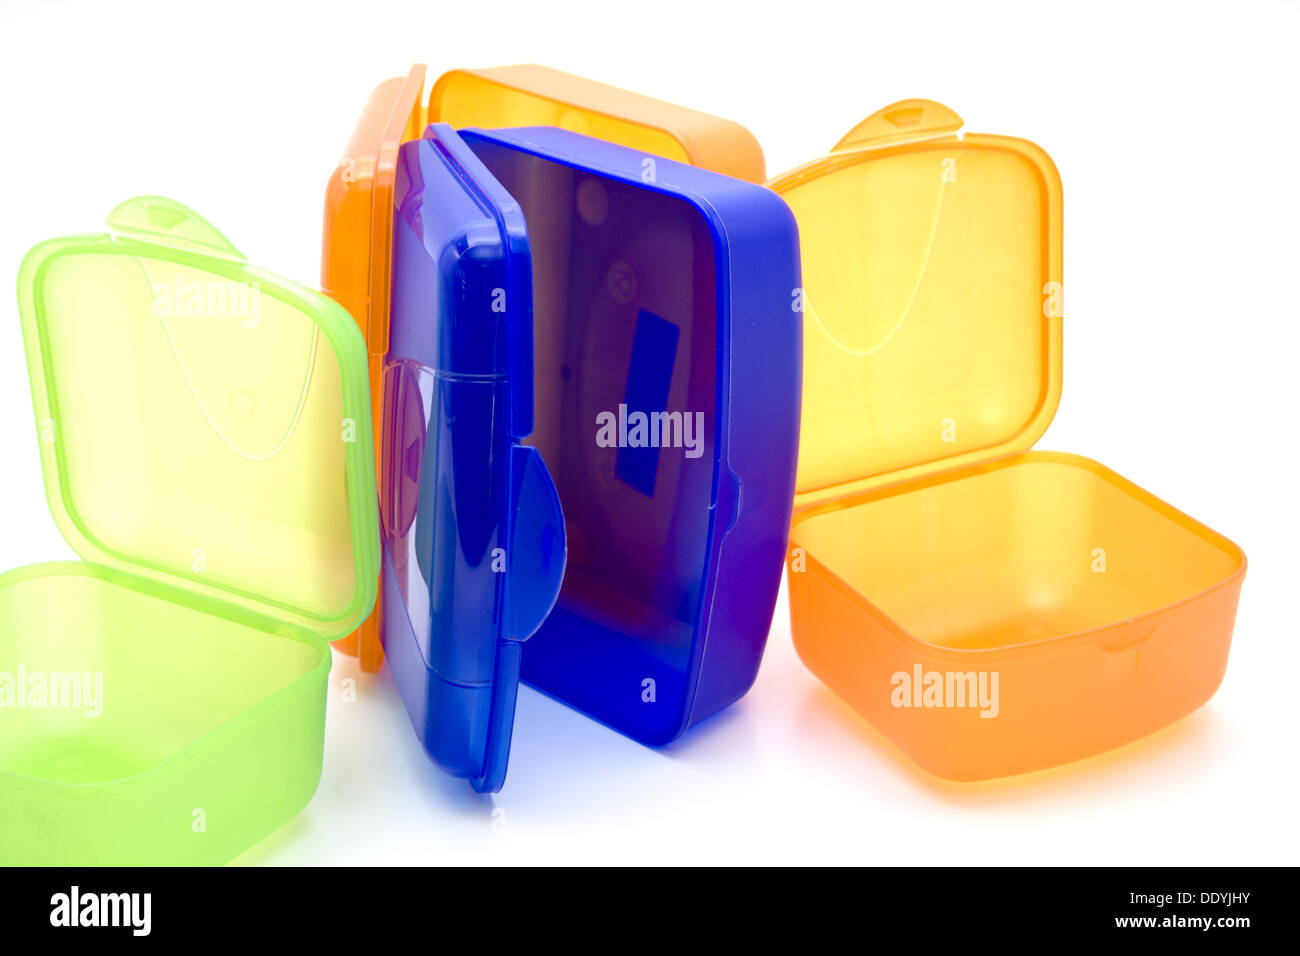 Fresh hold tins - Stock Image